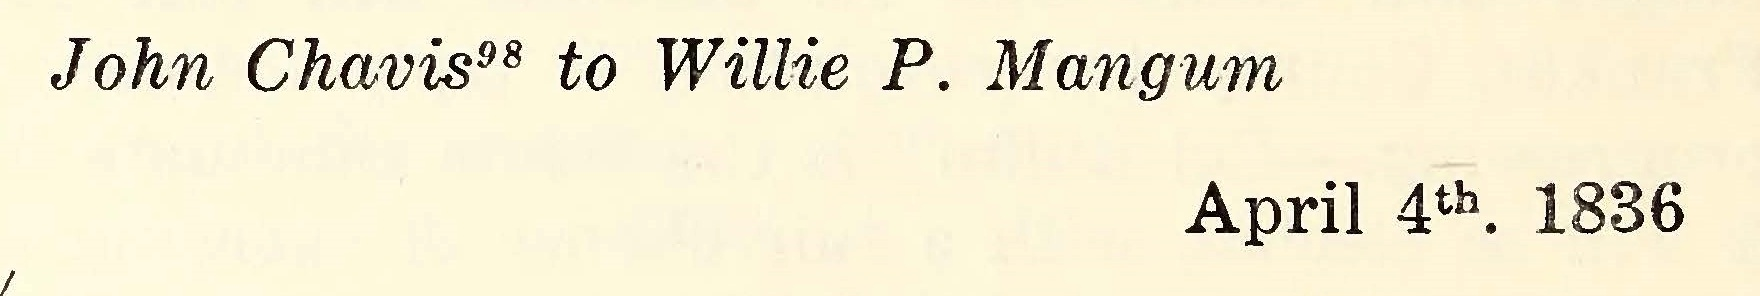 Chavis, John, April 4, 1836 Letter to Willie P. Mangum Title Page.jpg